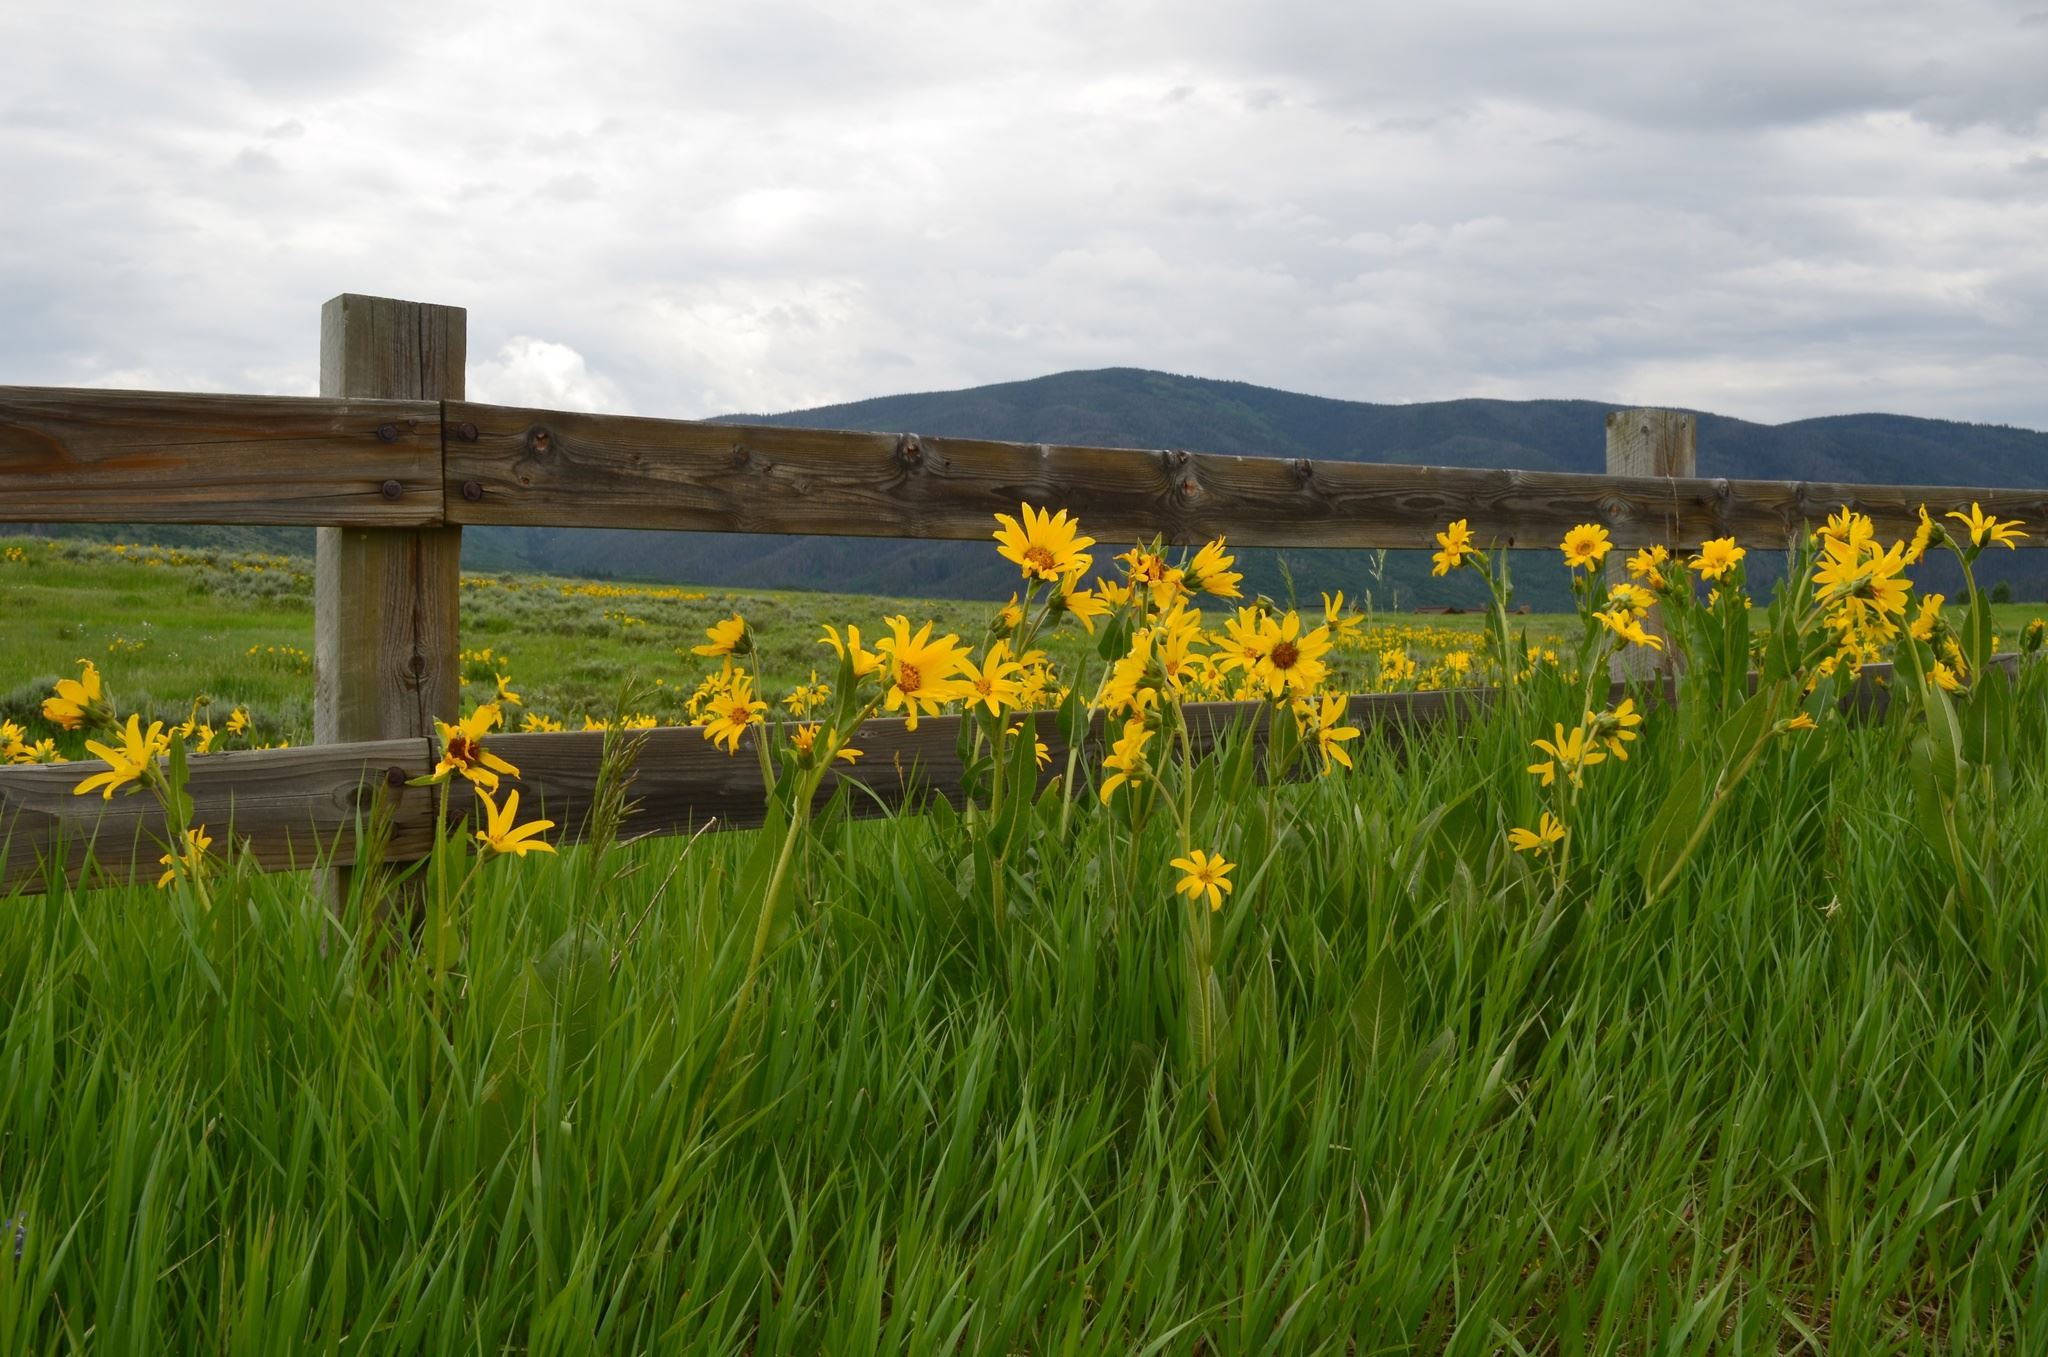 yellow Wildflowers along the fence with tall grass